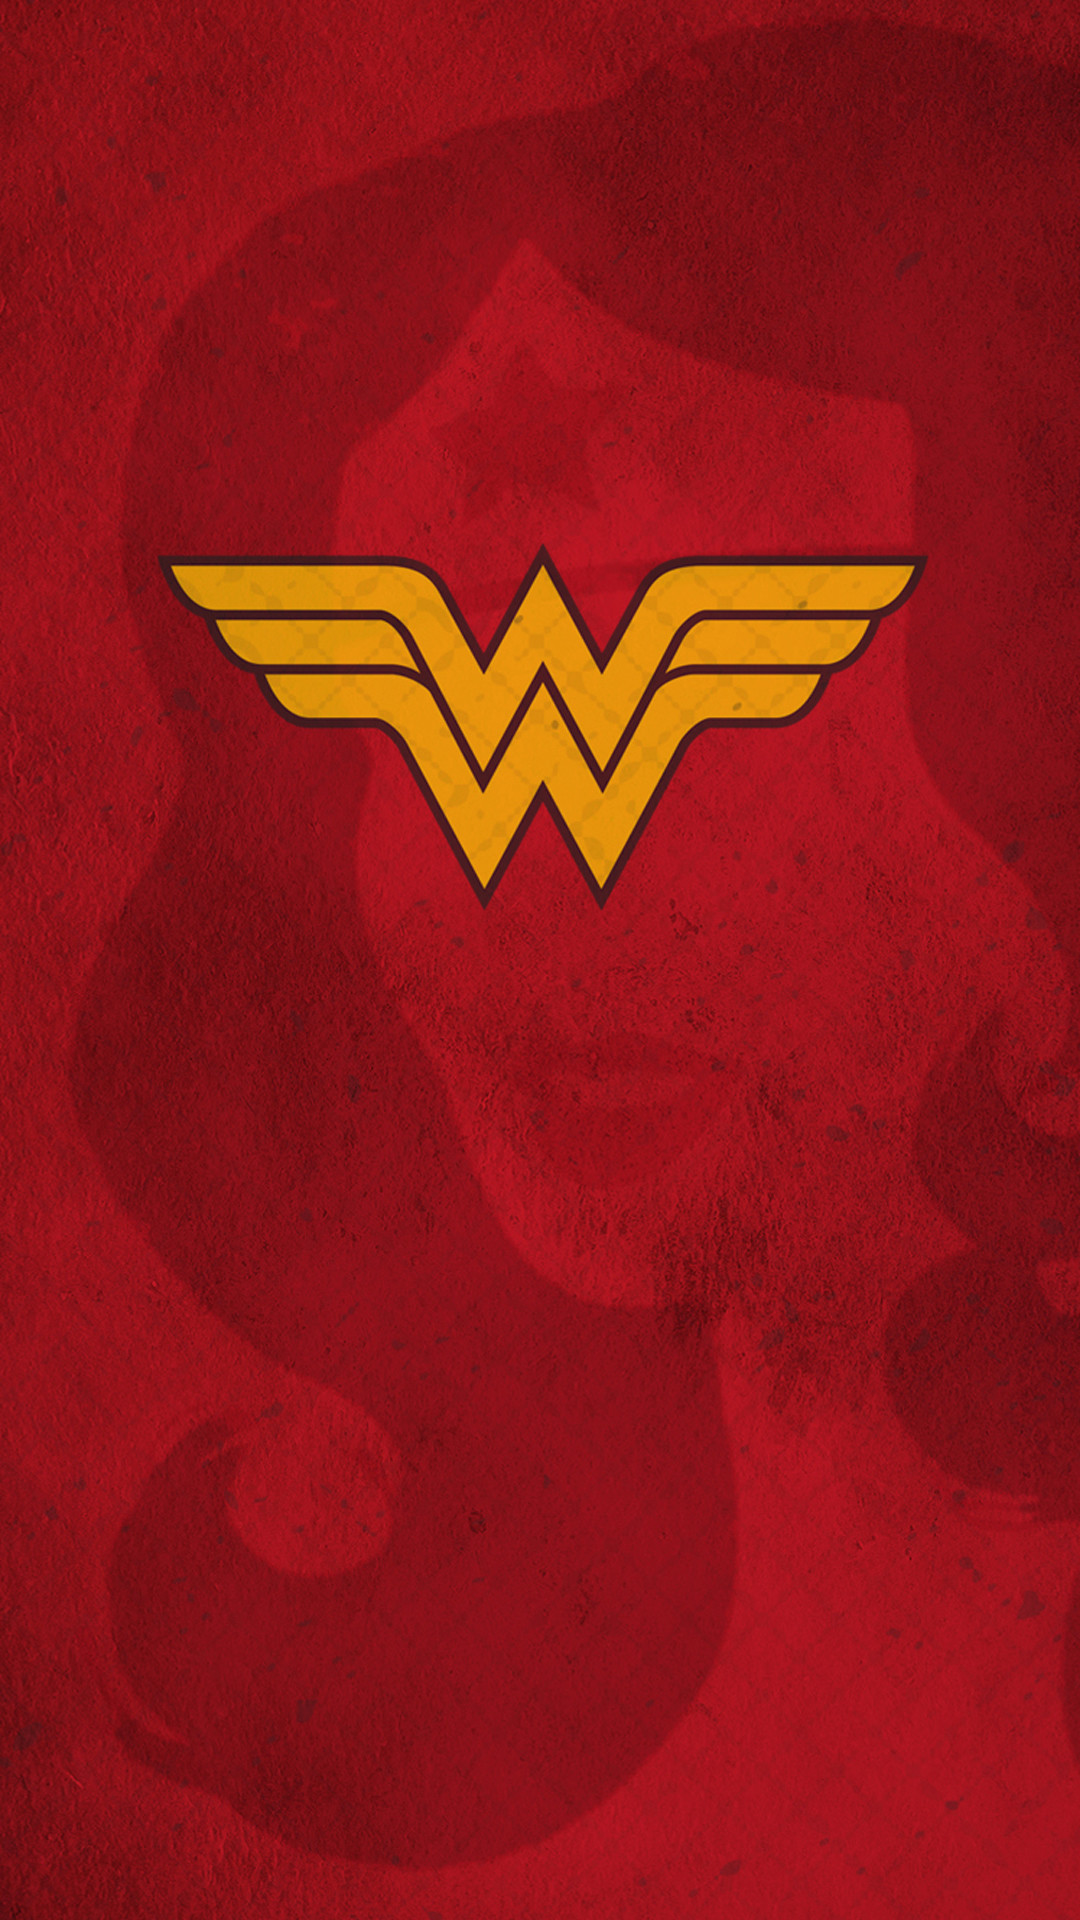 1080x1920 Wonder Woman IPhone Wallpaper Resolution